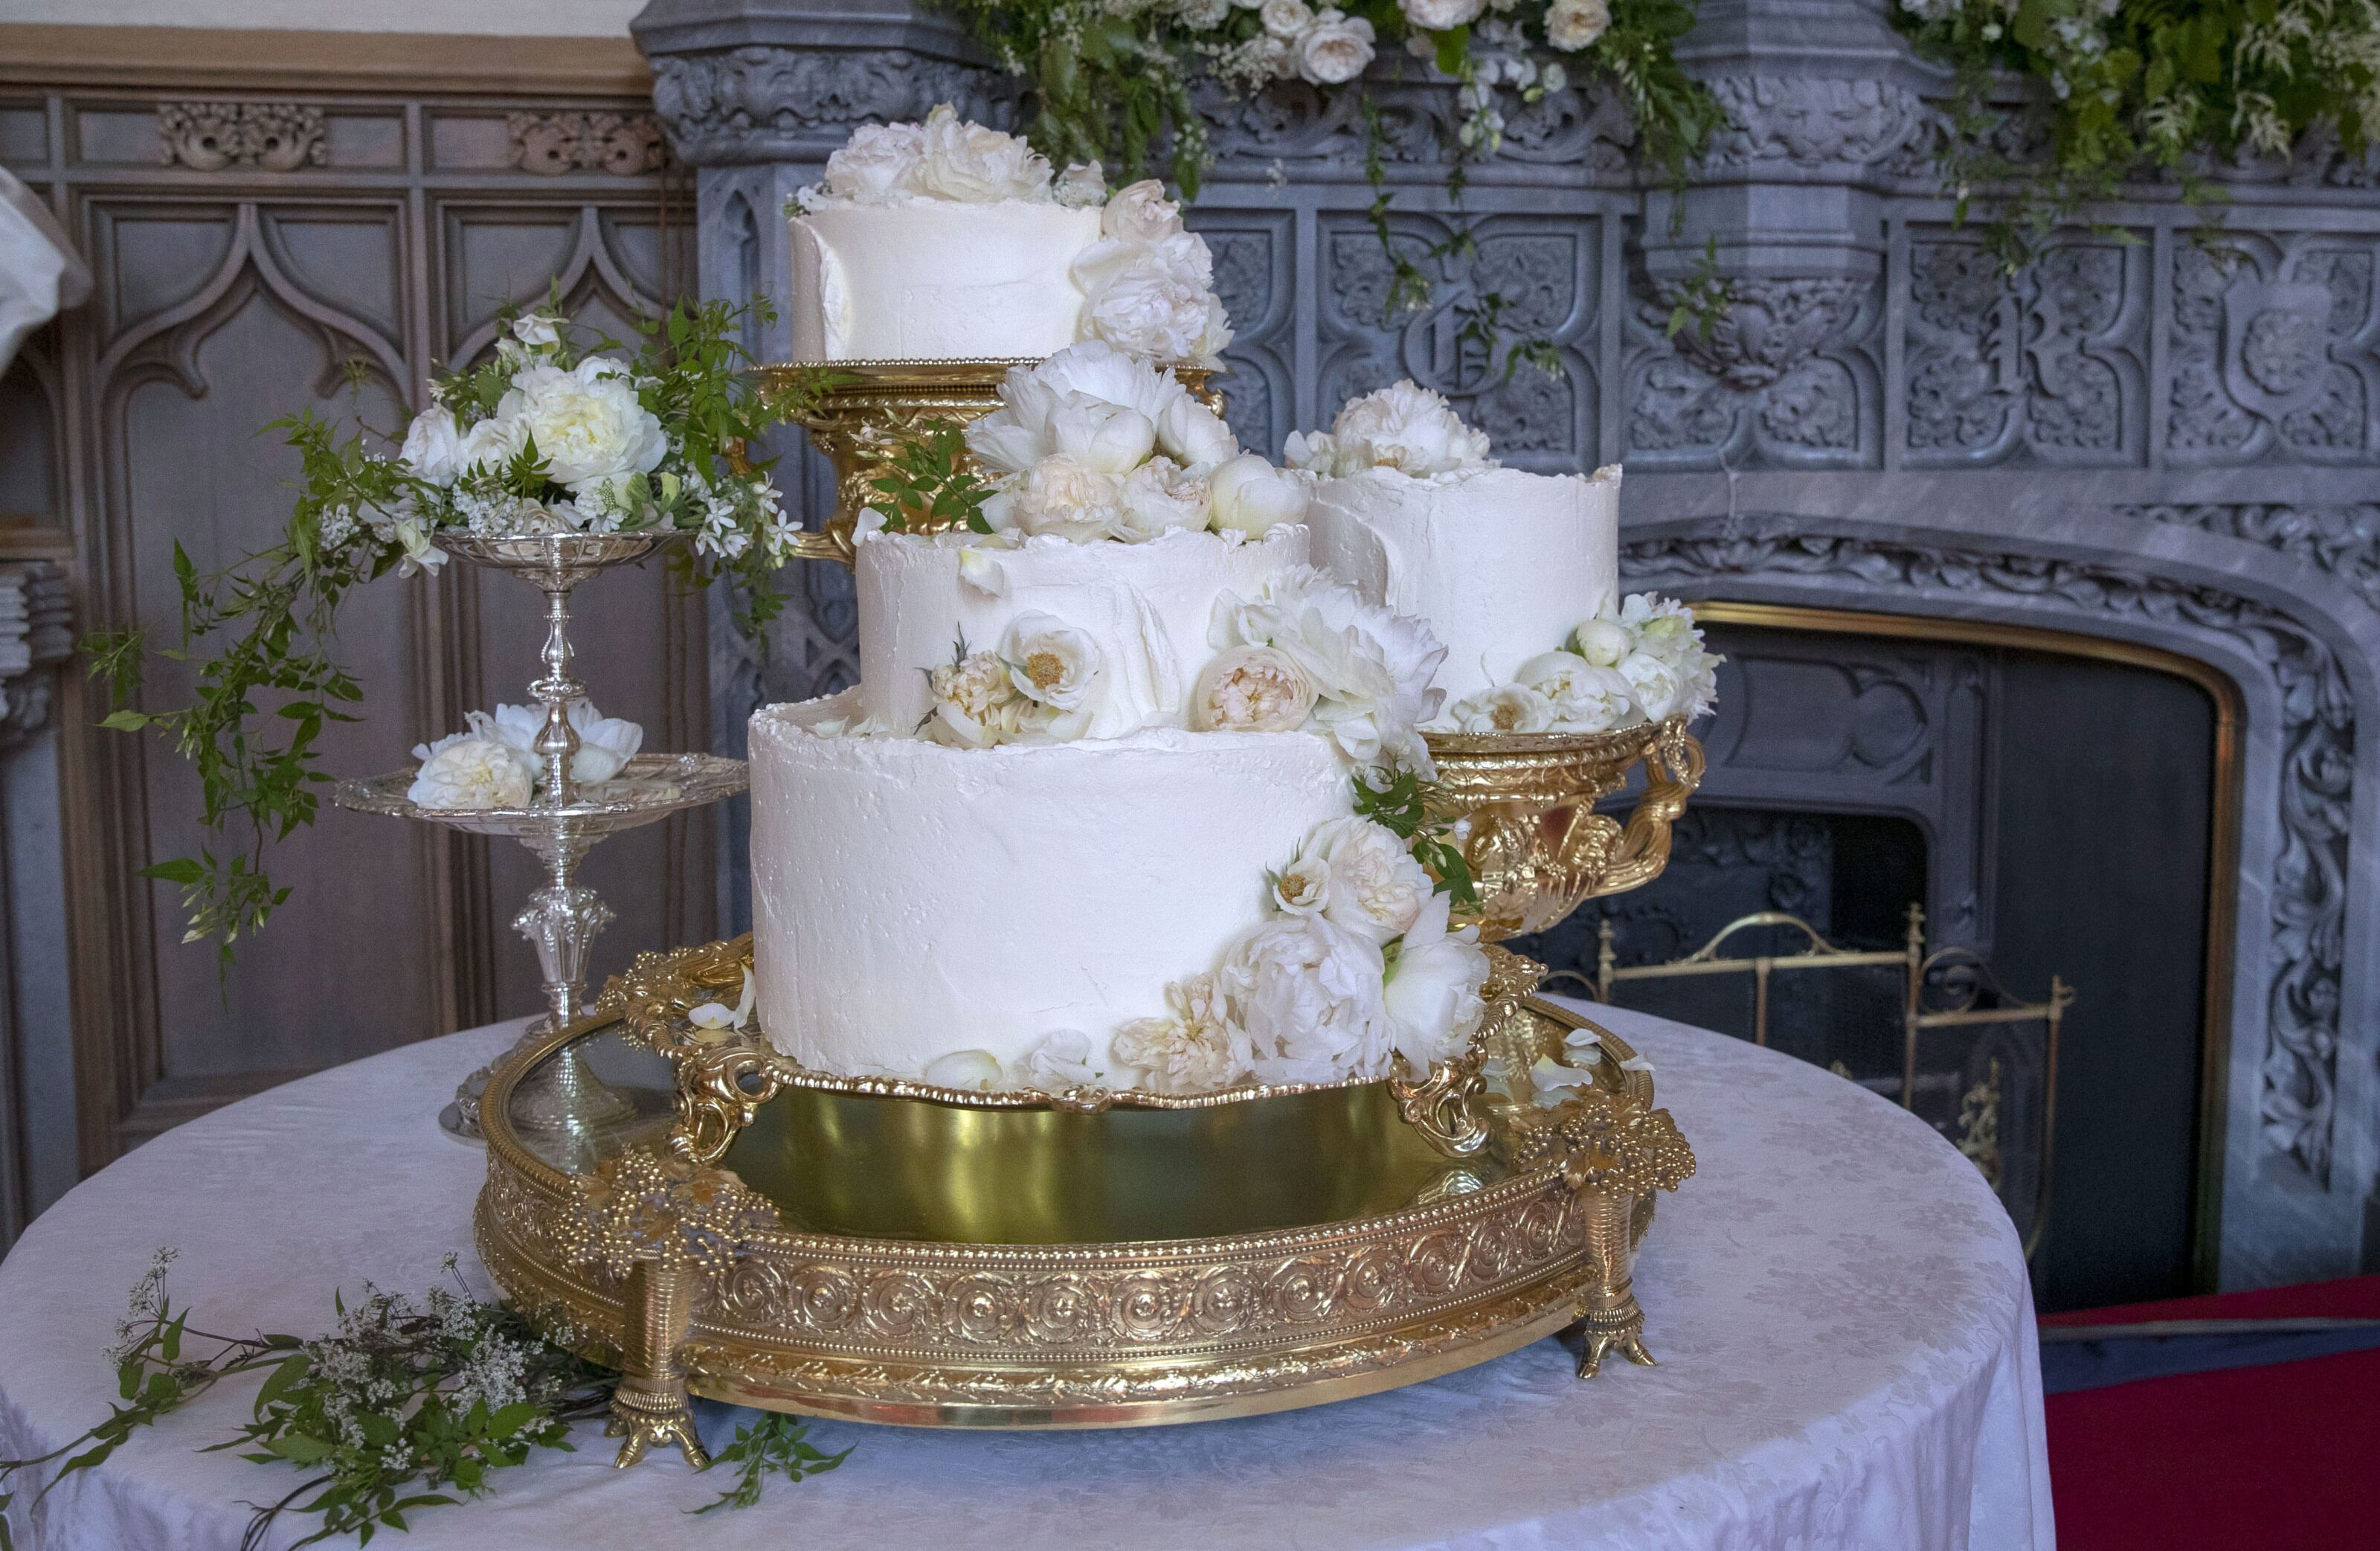 Here is what that Royal Wedding Cake looked like in the end